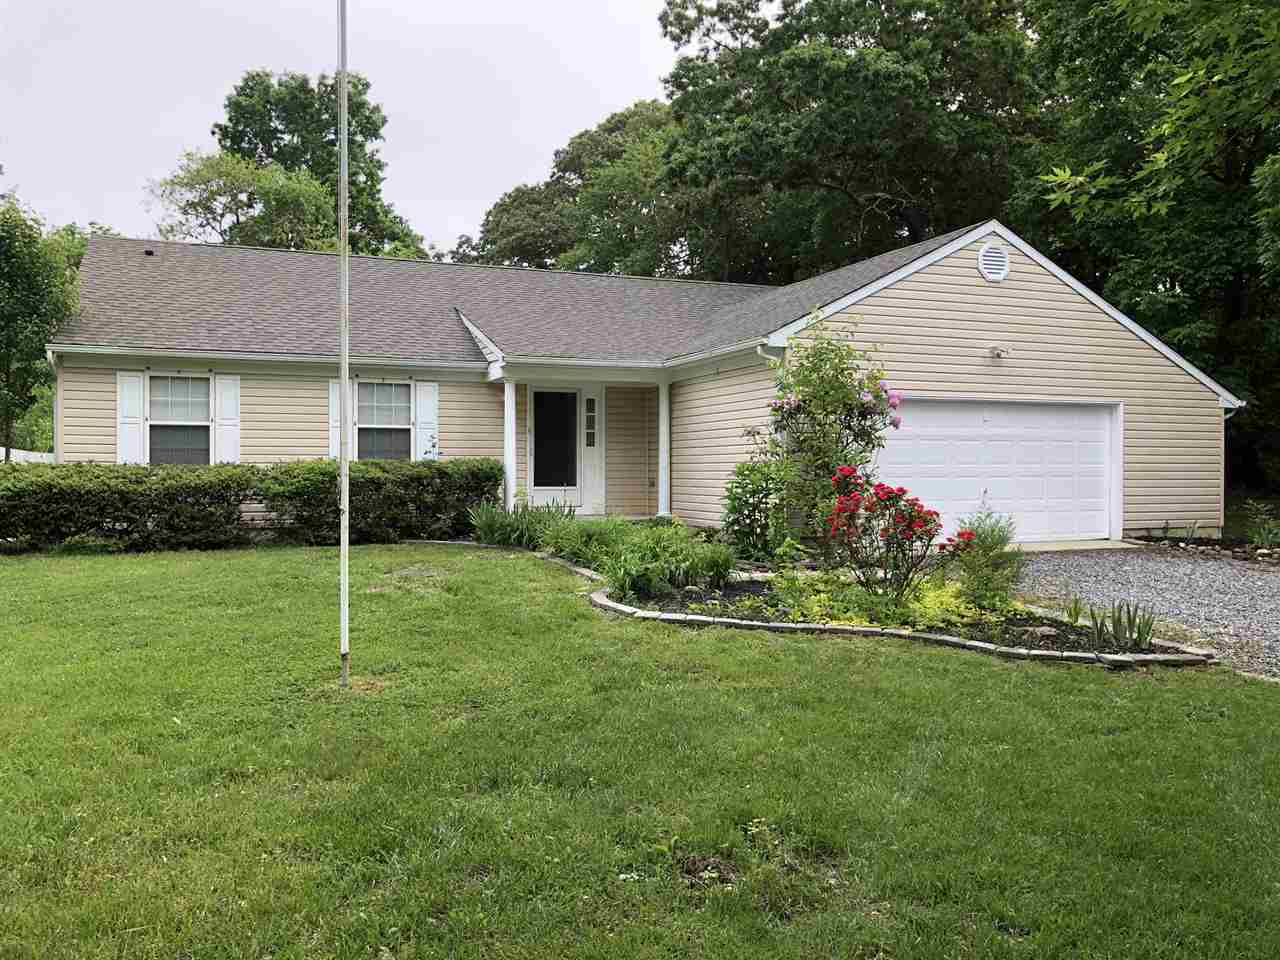 16 Woodland Road Road - Cape May Court House